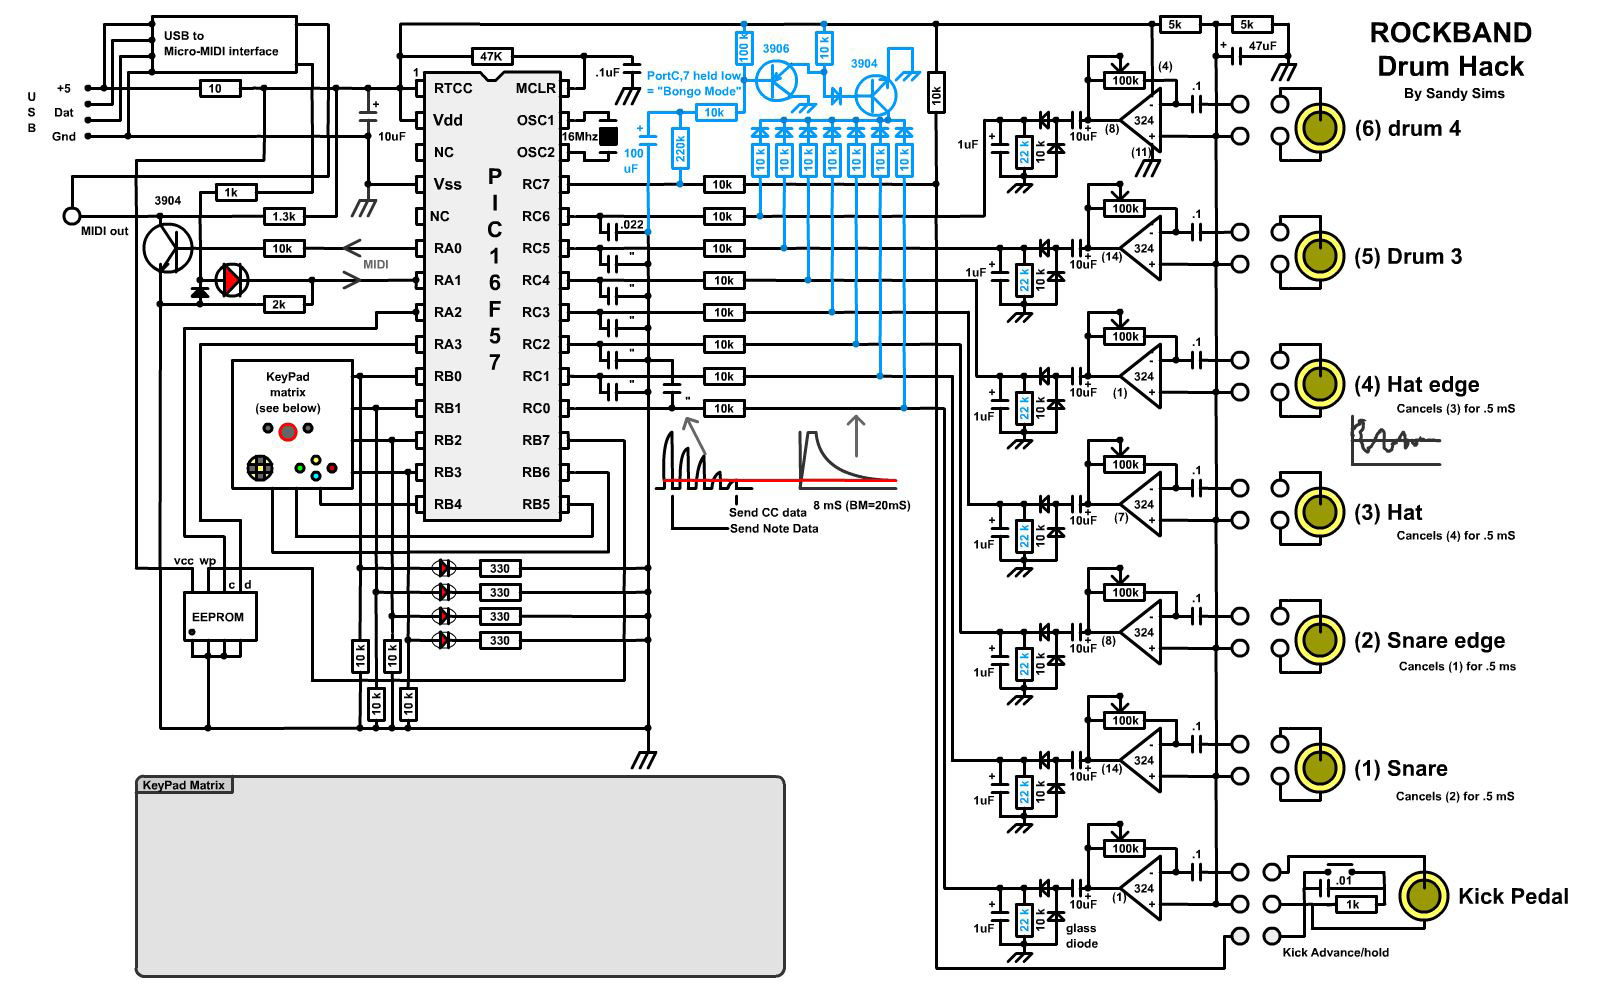 Fantastic Bose 901 Wiring Diagram Image - Everything You Need to ...